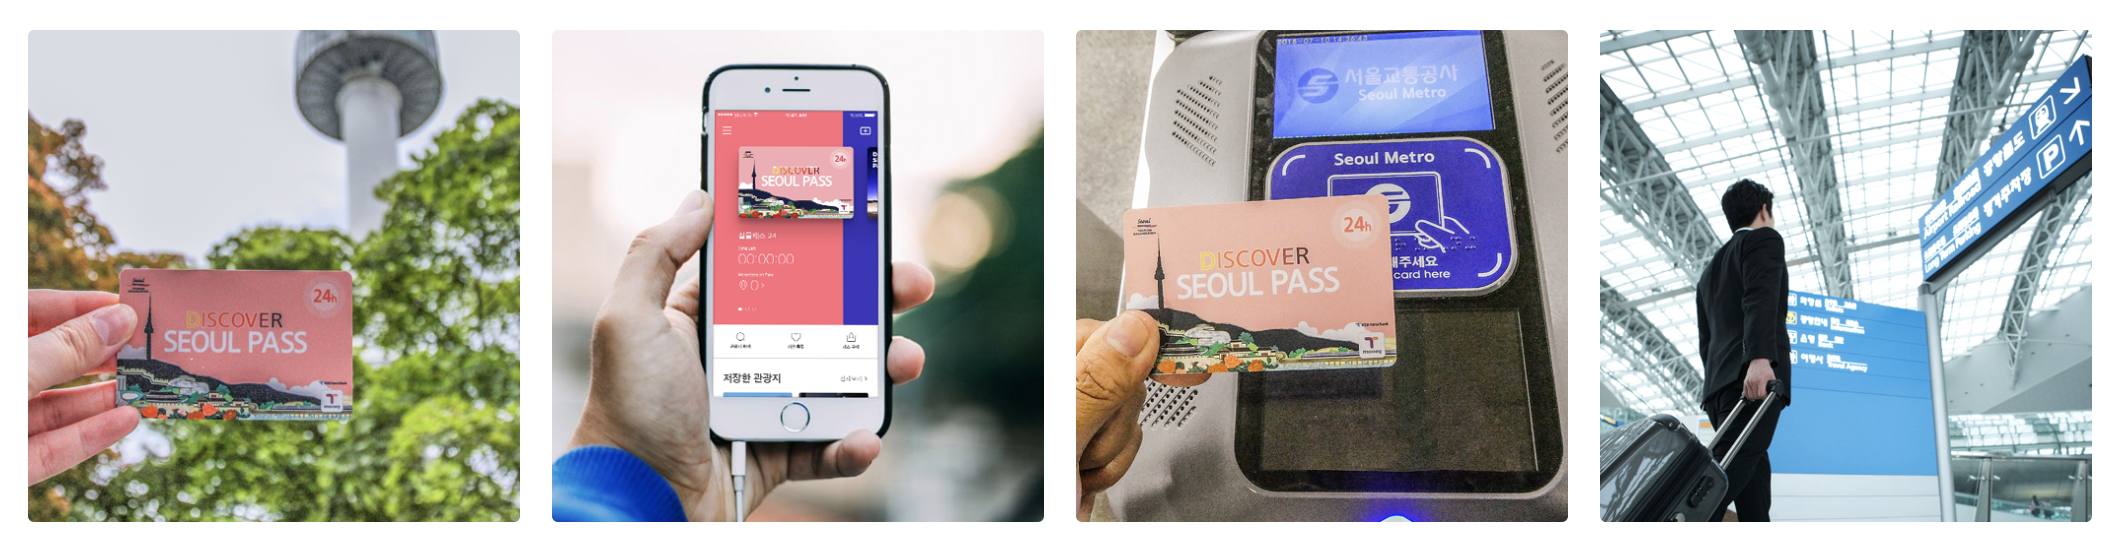 Screengrab from  Discover Seoul Pass